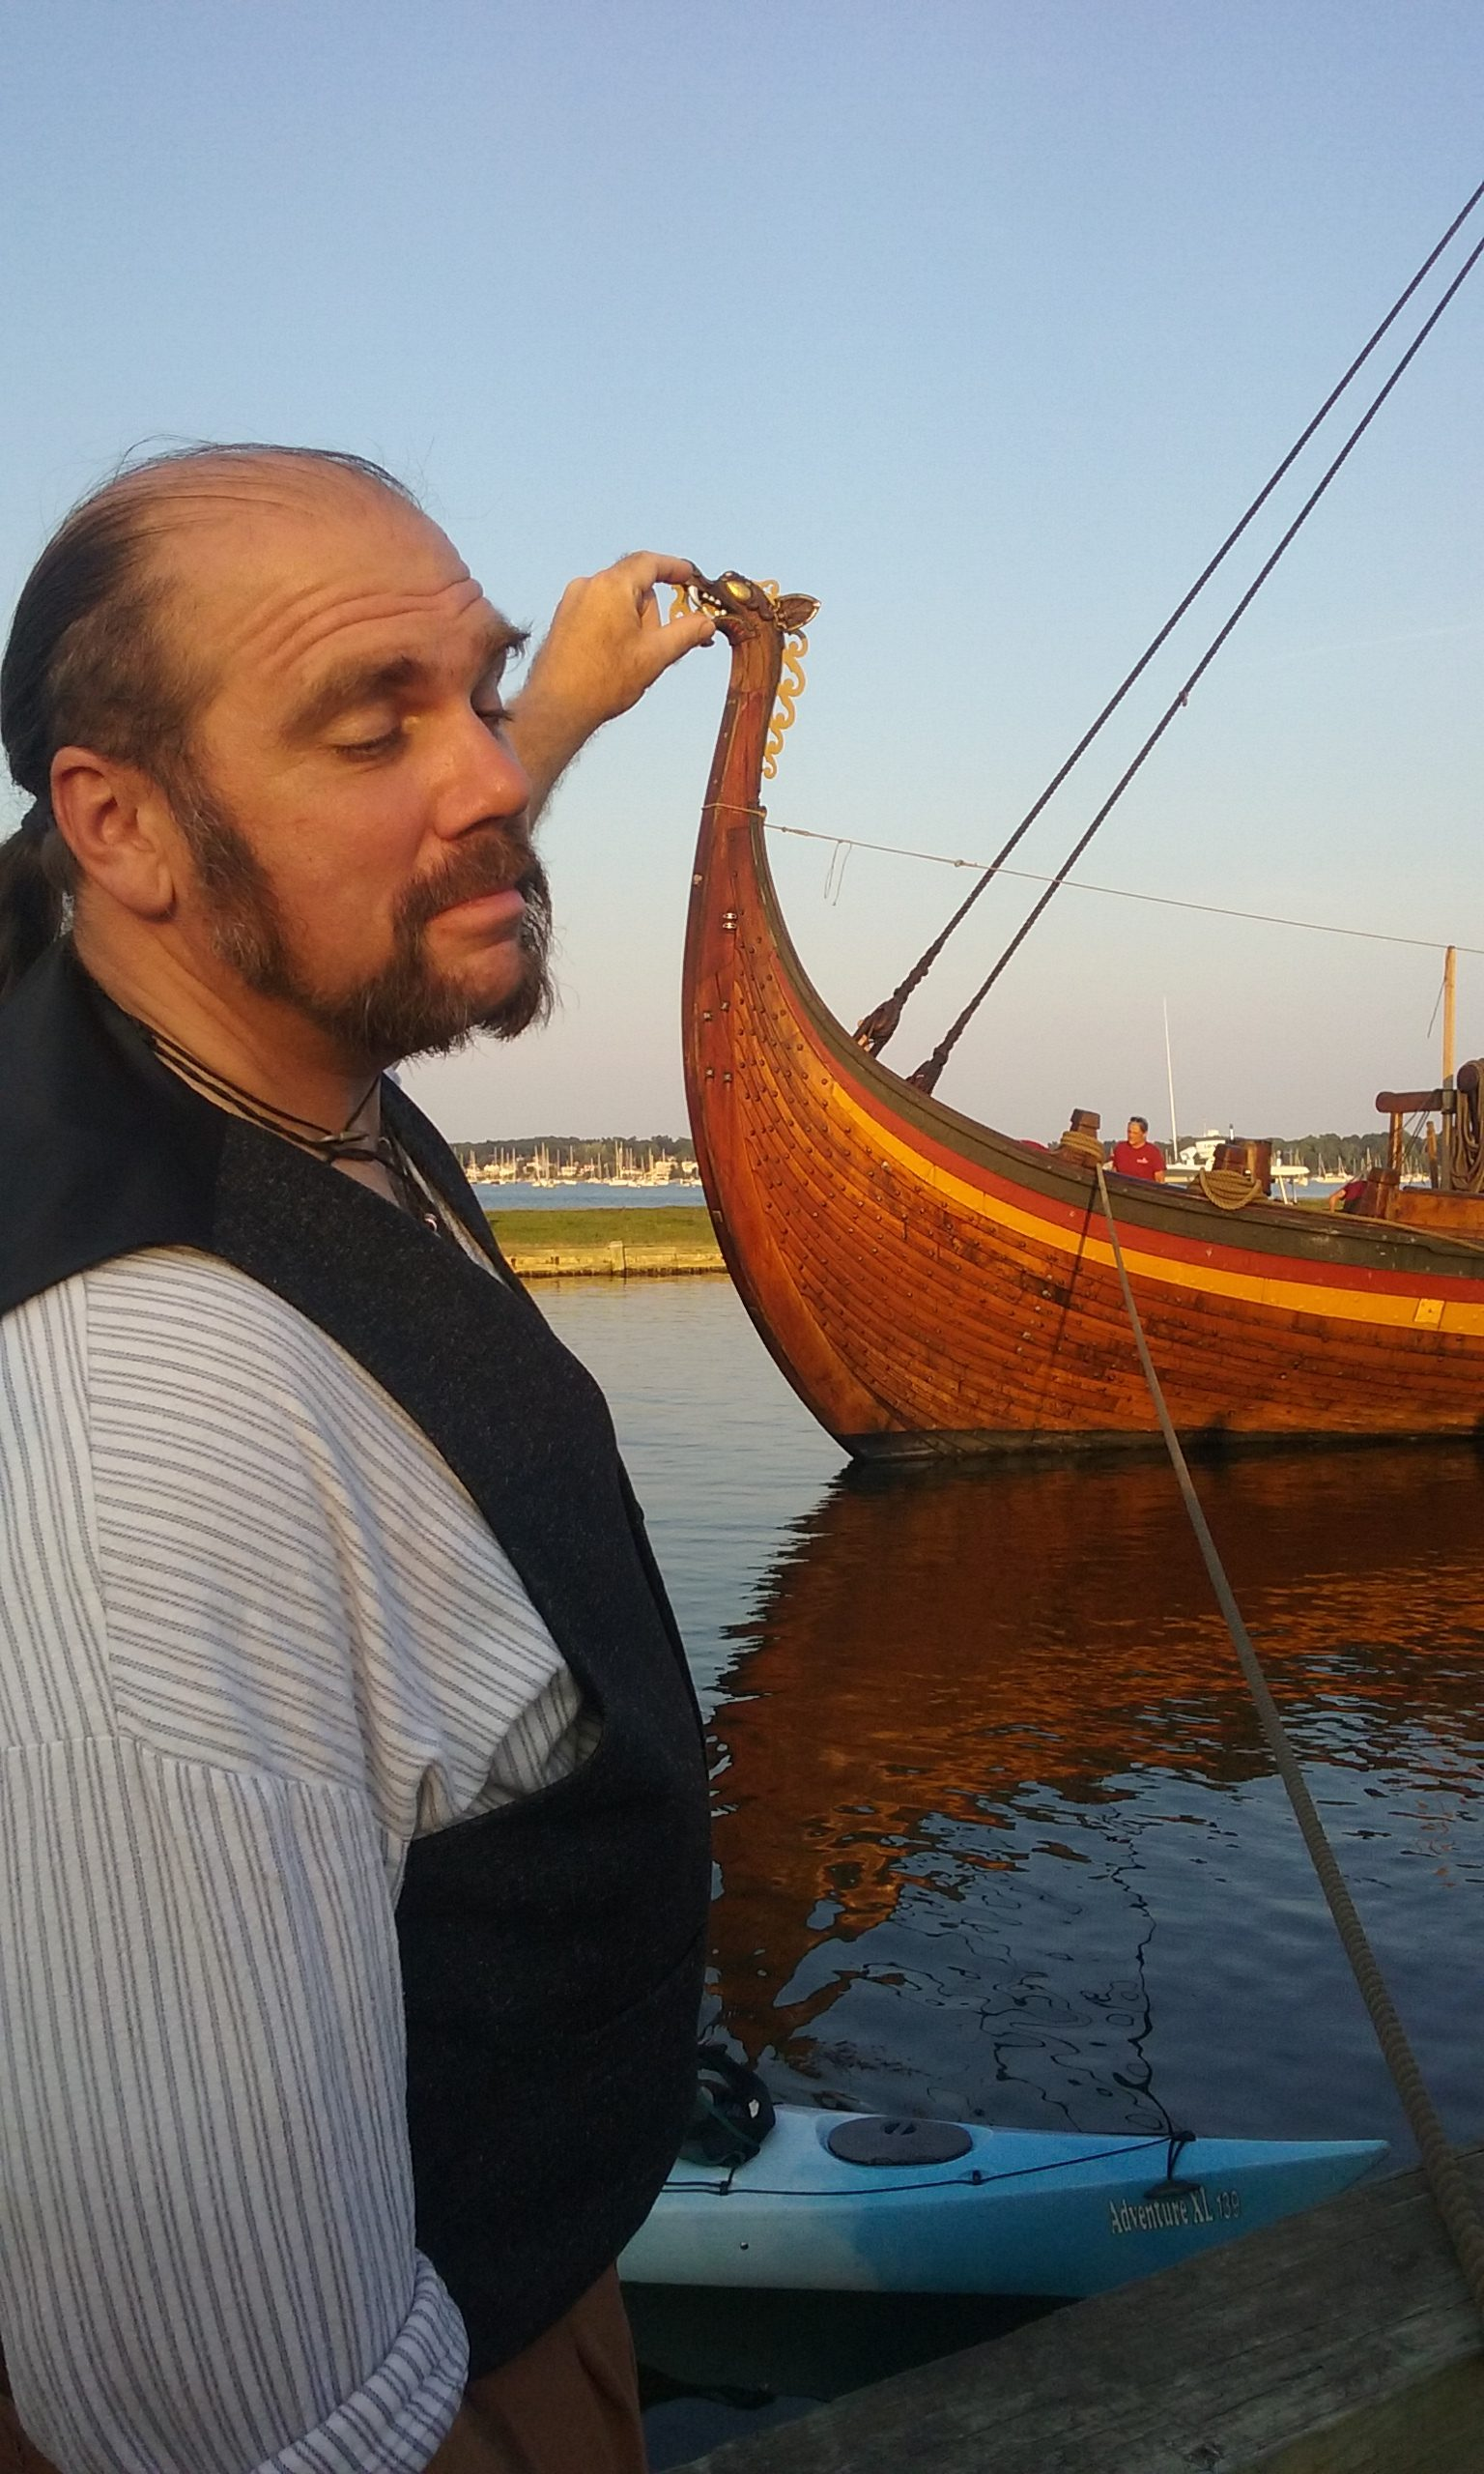 Chris Dowgin squeezing the head of a Dragon prow on a Viking longship